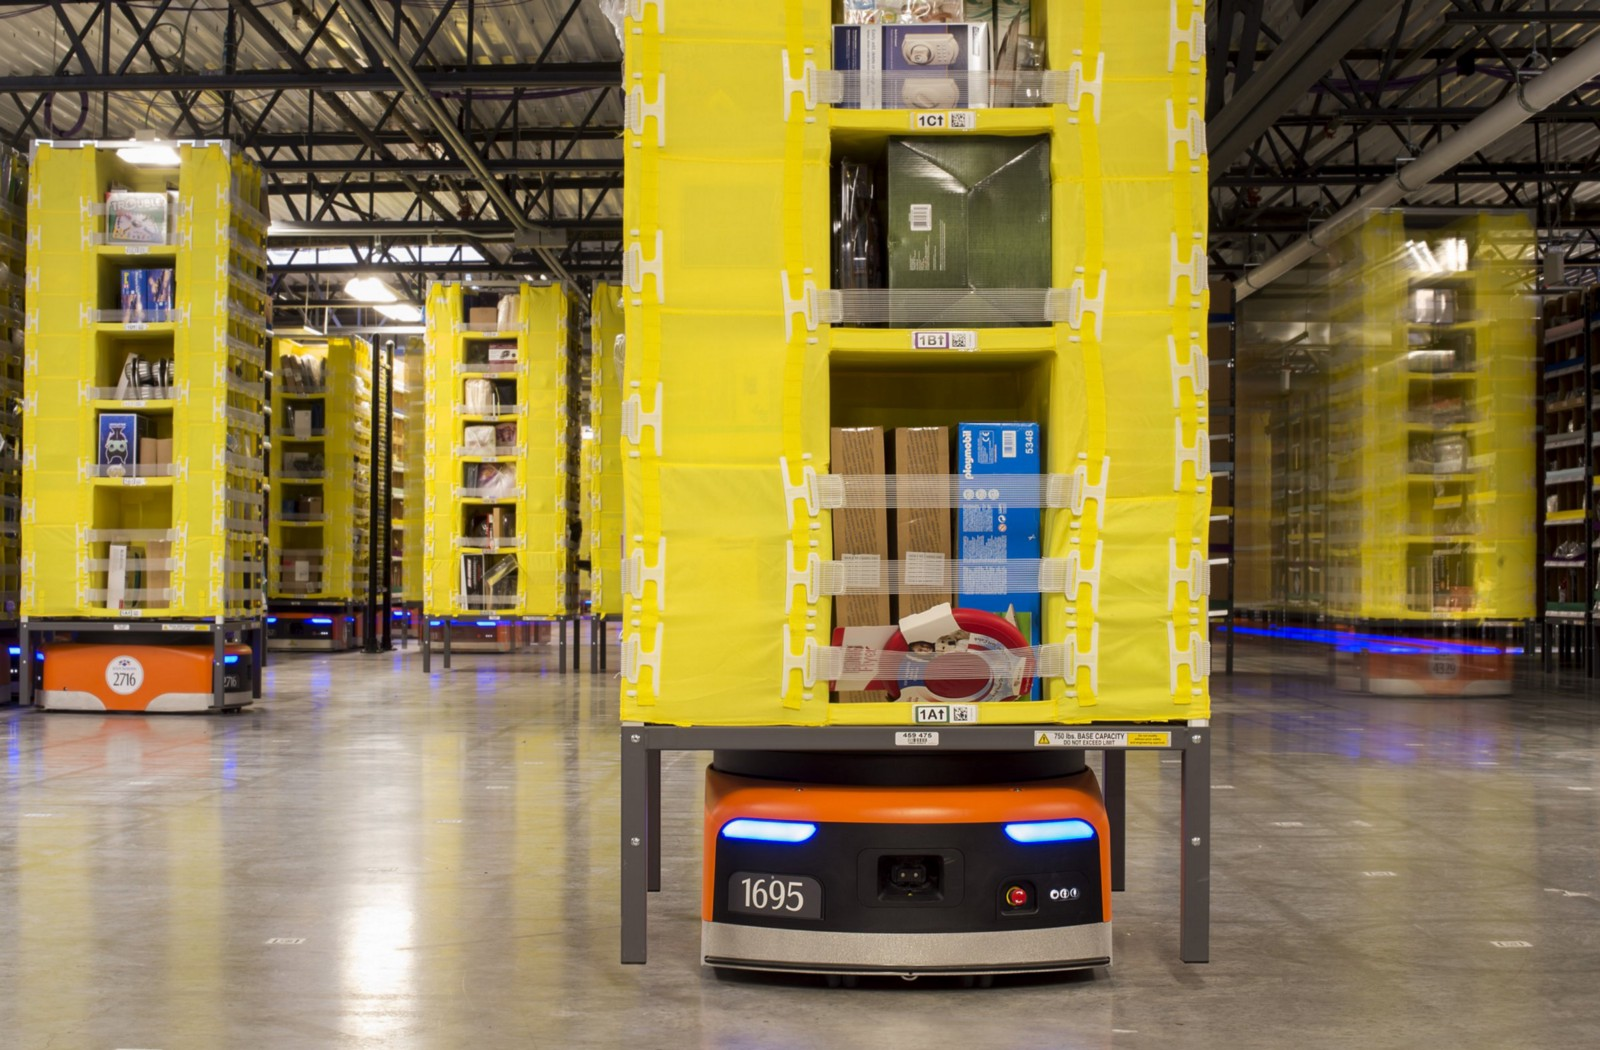 Amazon Robotics for order fulfillment